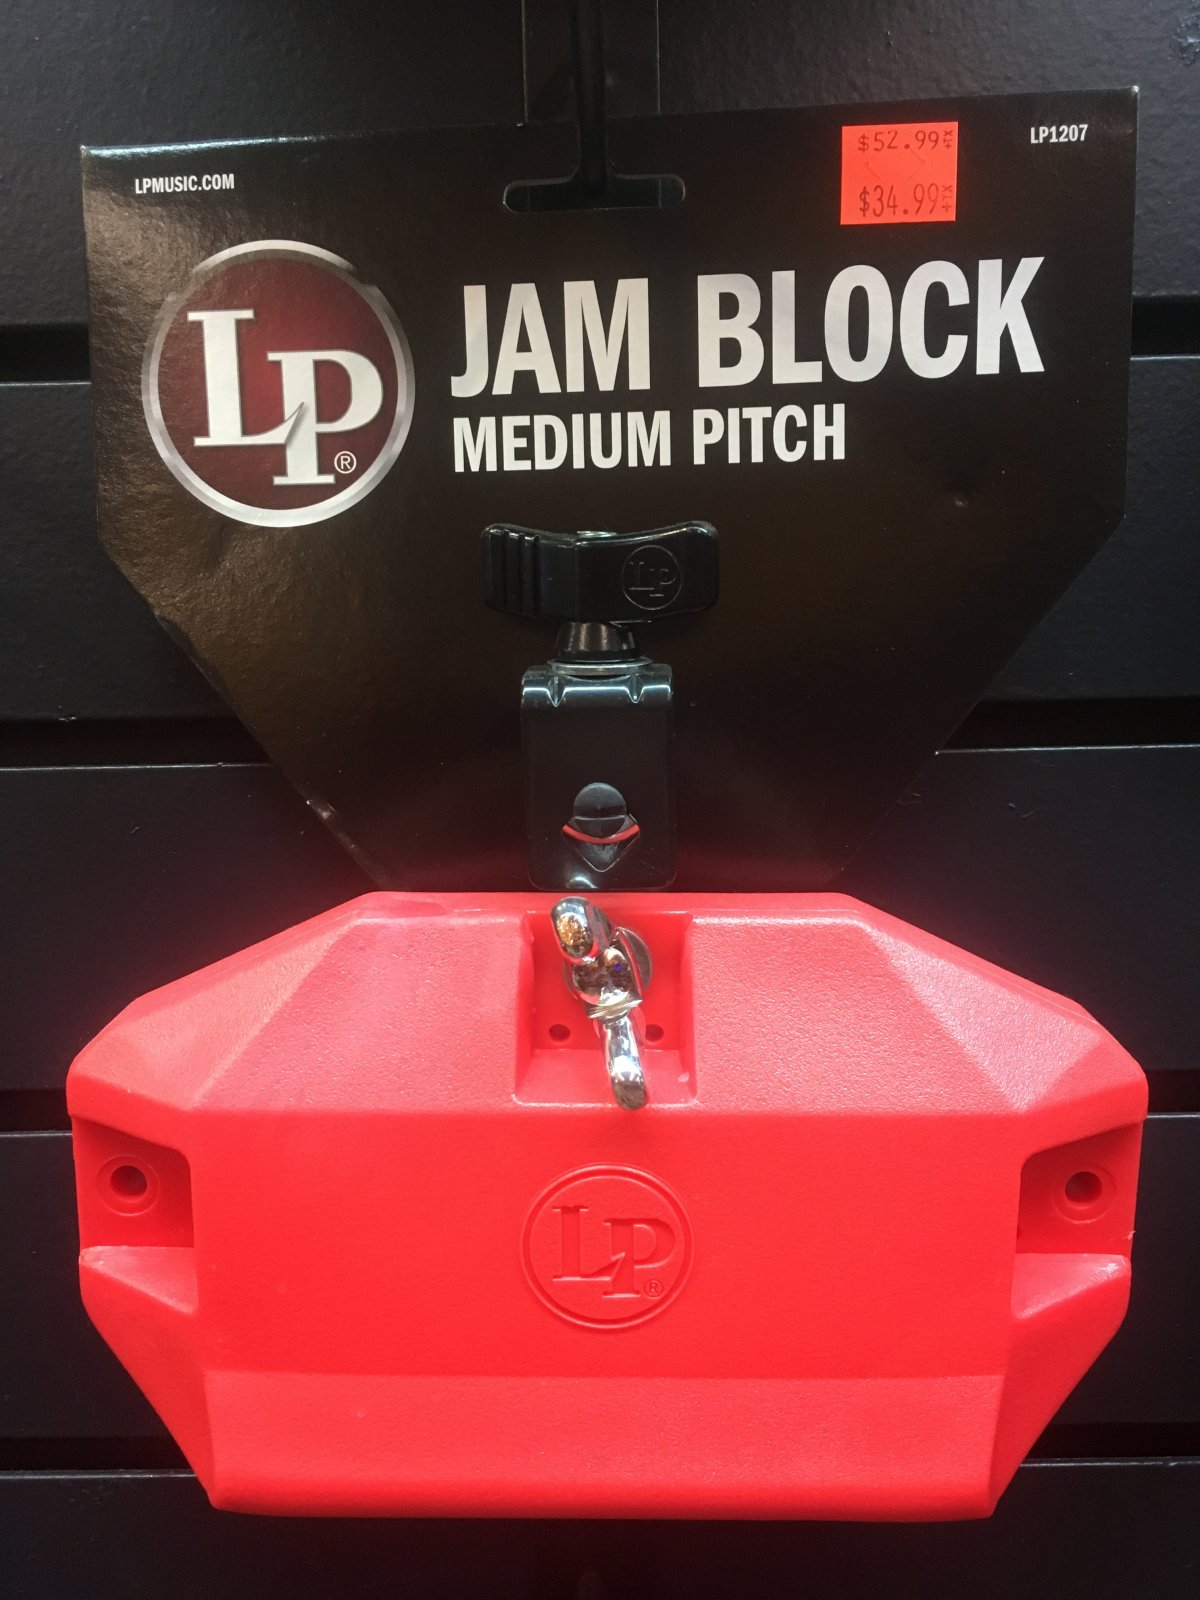 LP1207 Jam Block Medium Pitch